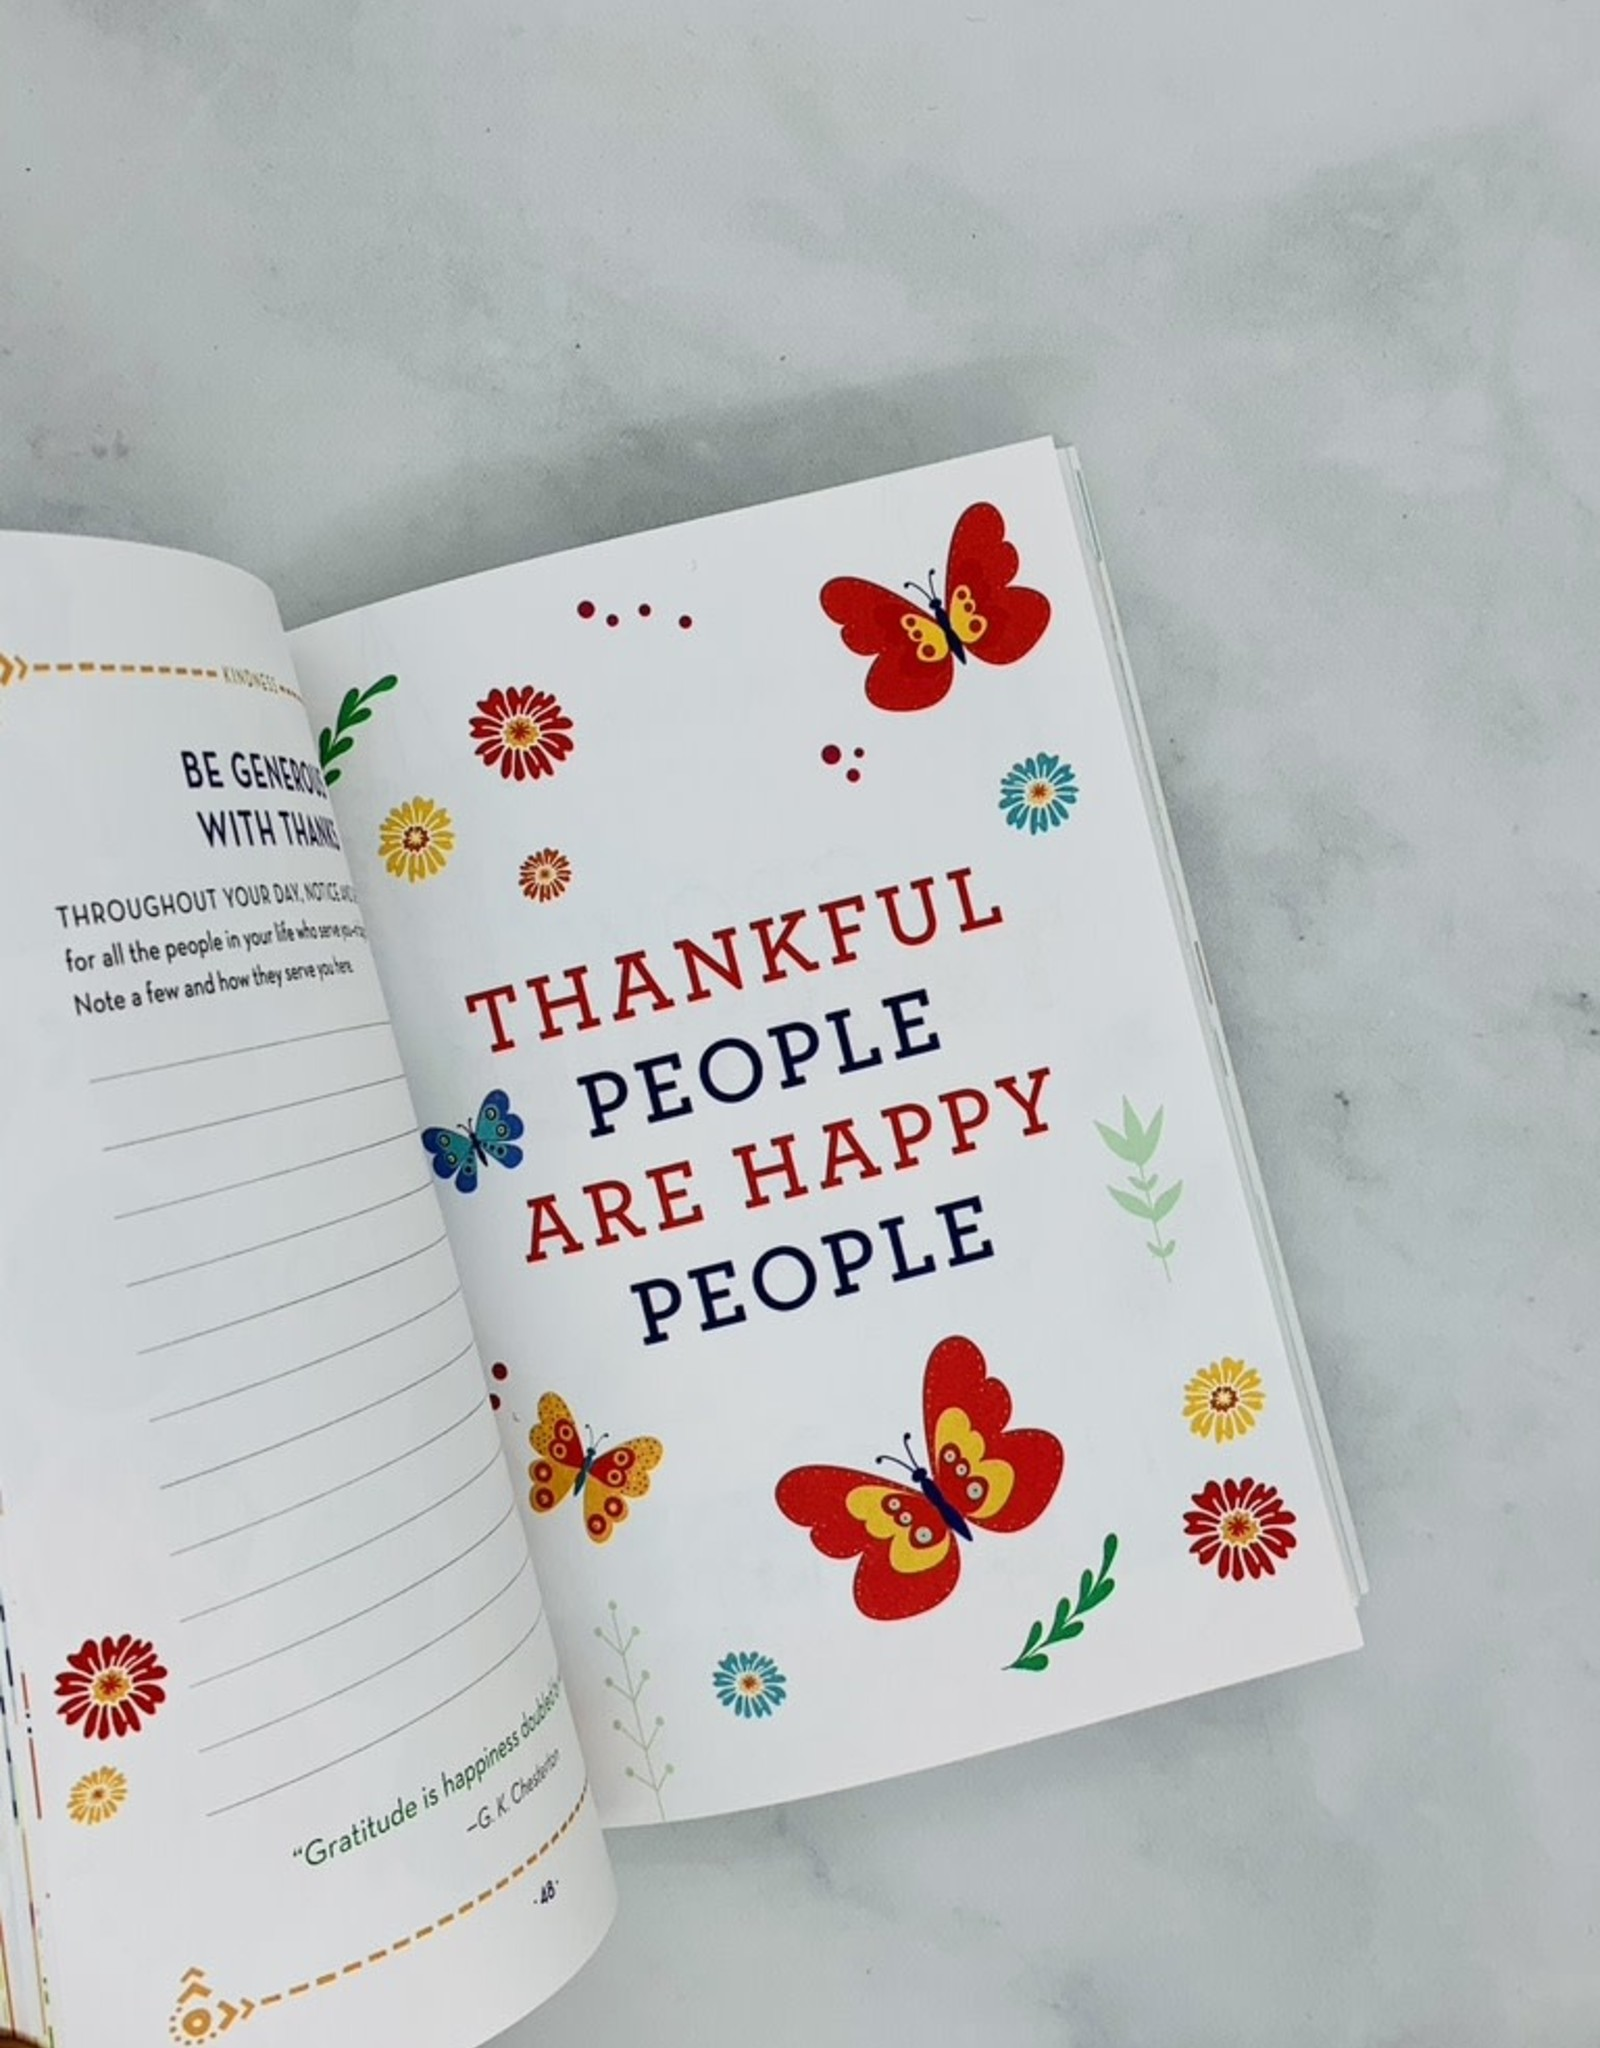 My Little Lykke Journal How to be happy by FiNDing the Good in the World